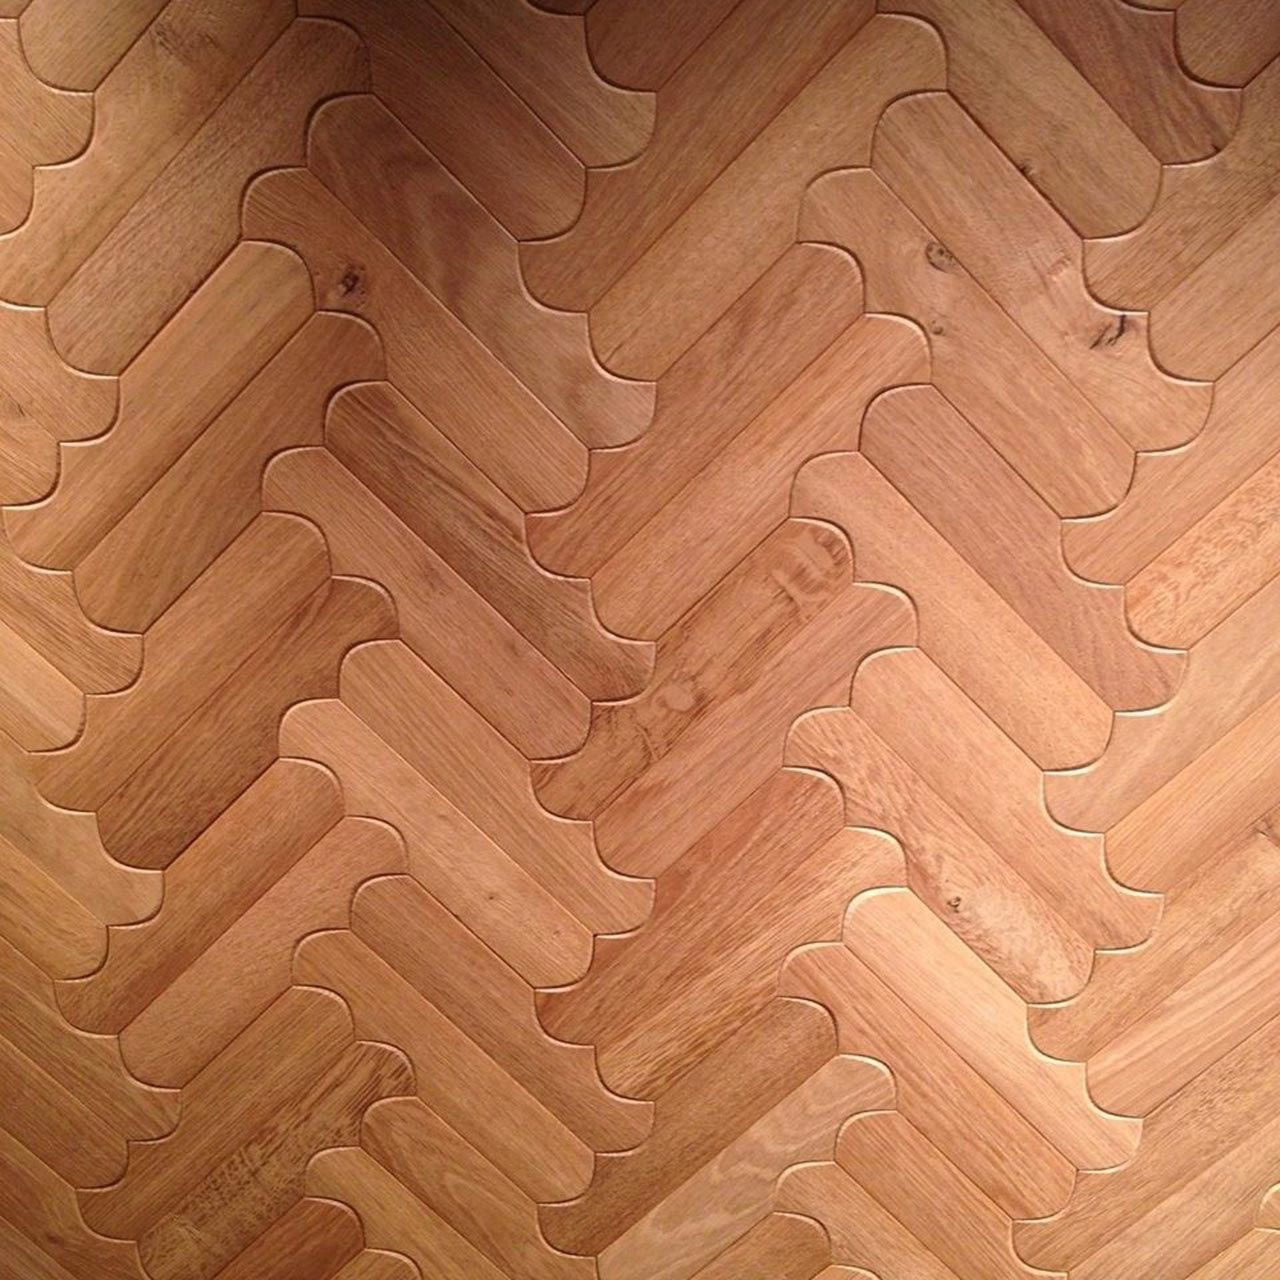 Biscuit the new parquet flooring by listone giordano for Parquet wood flooring